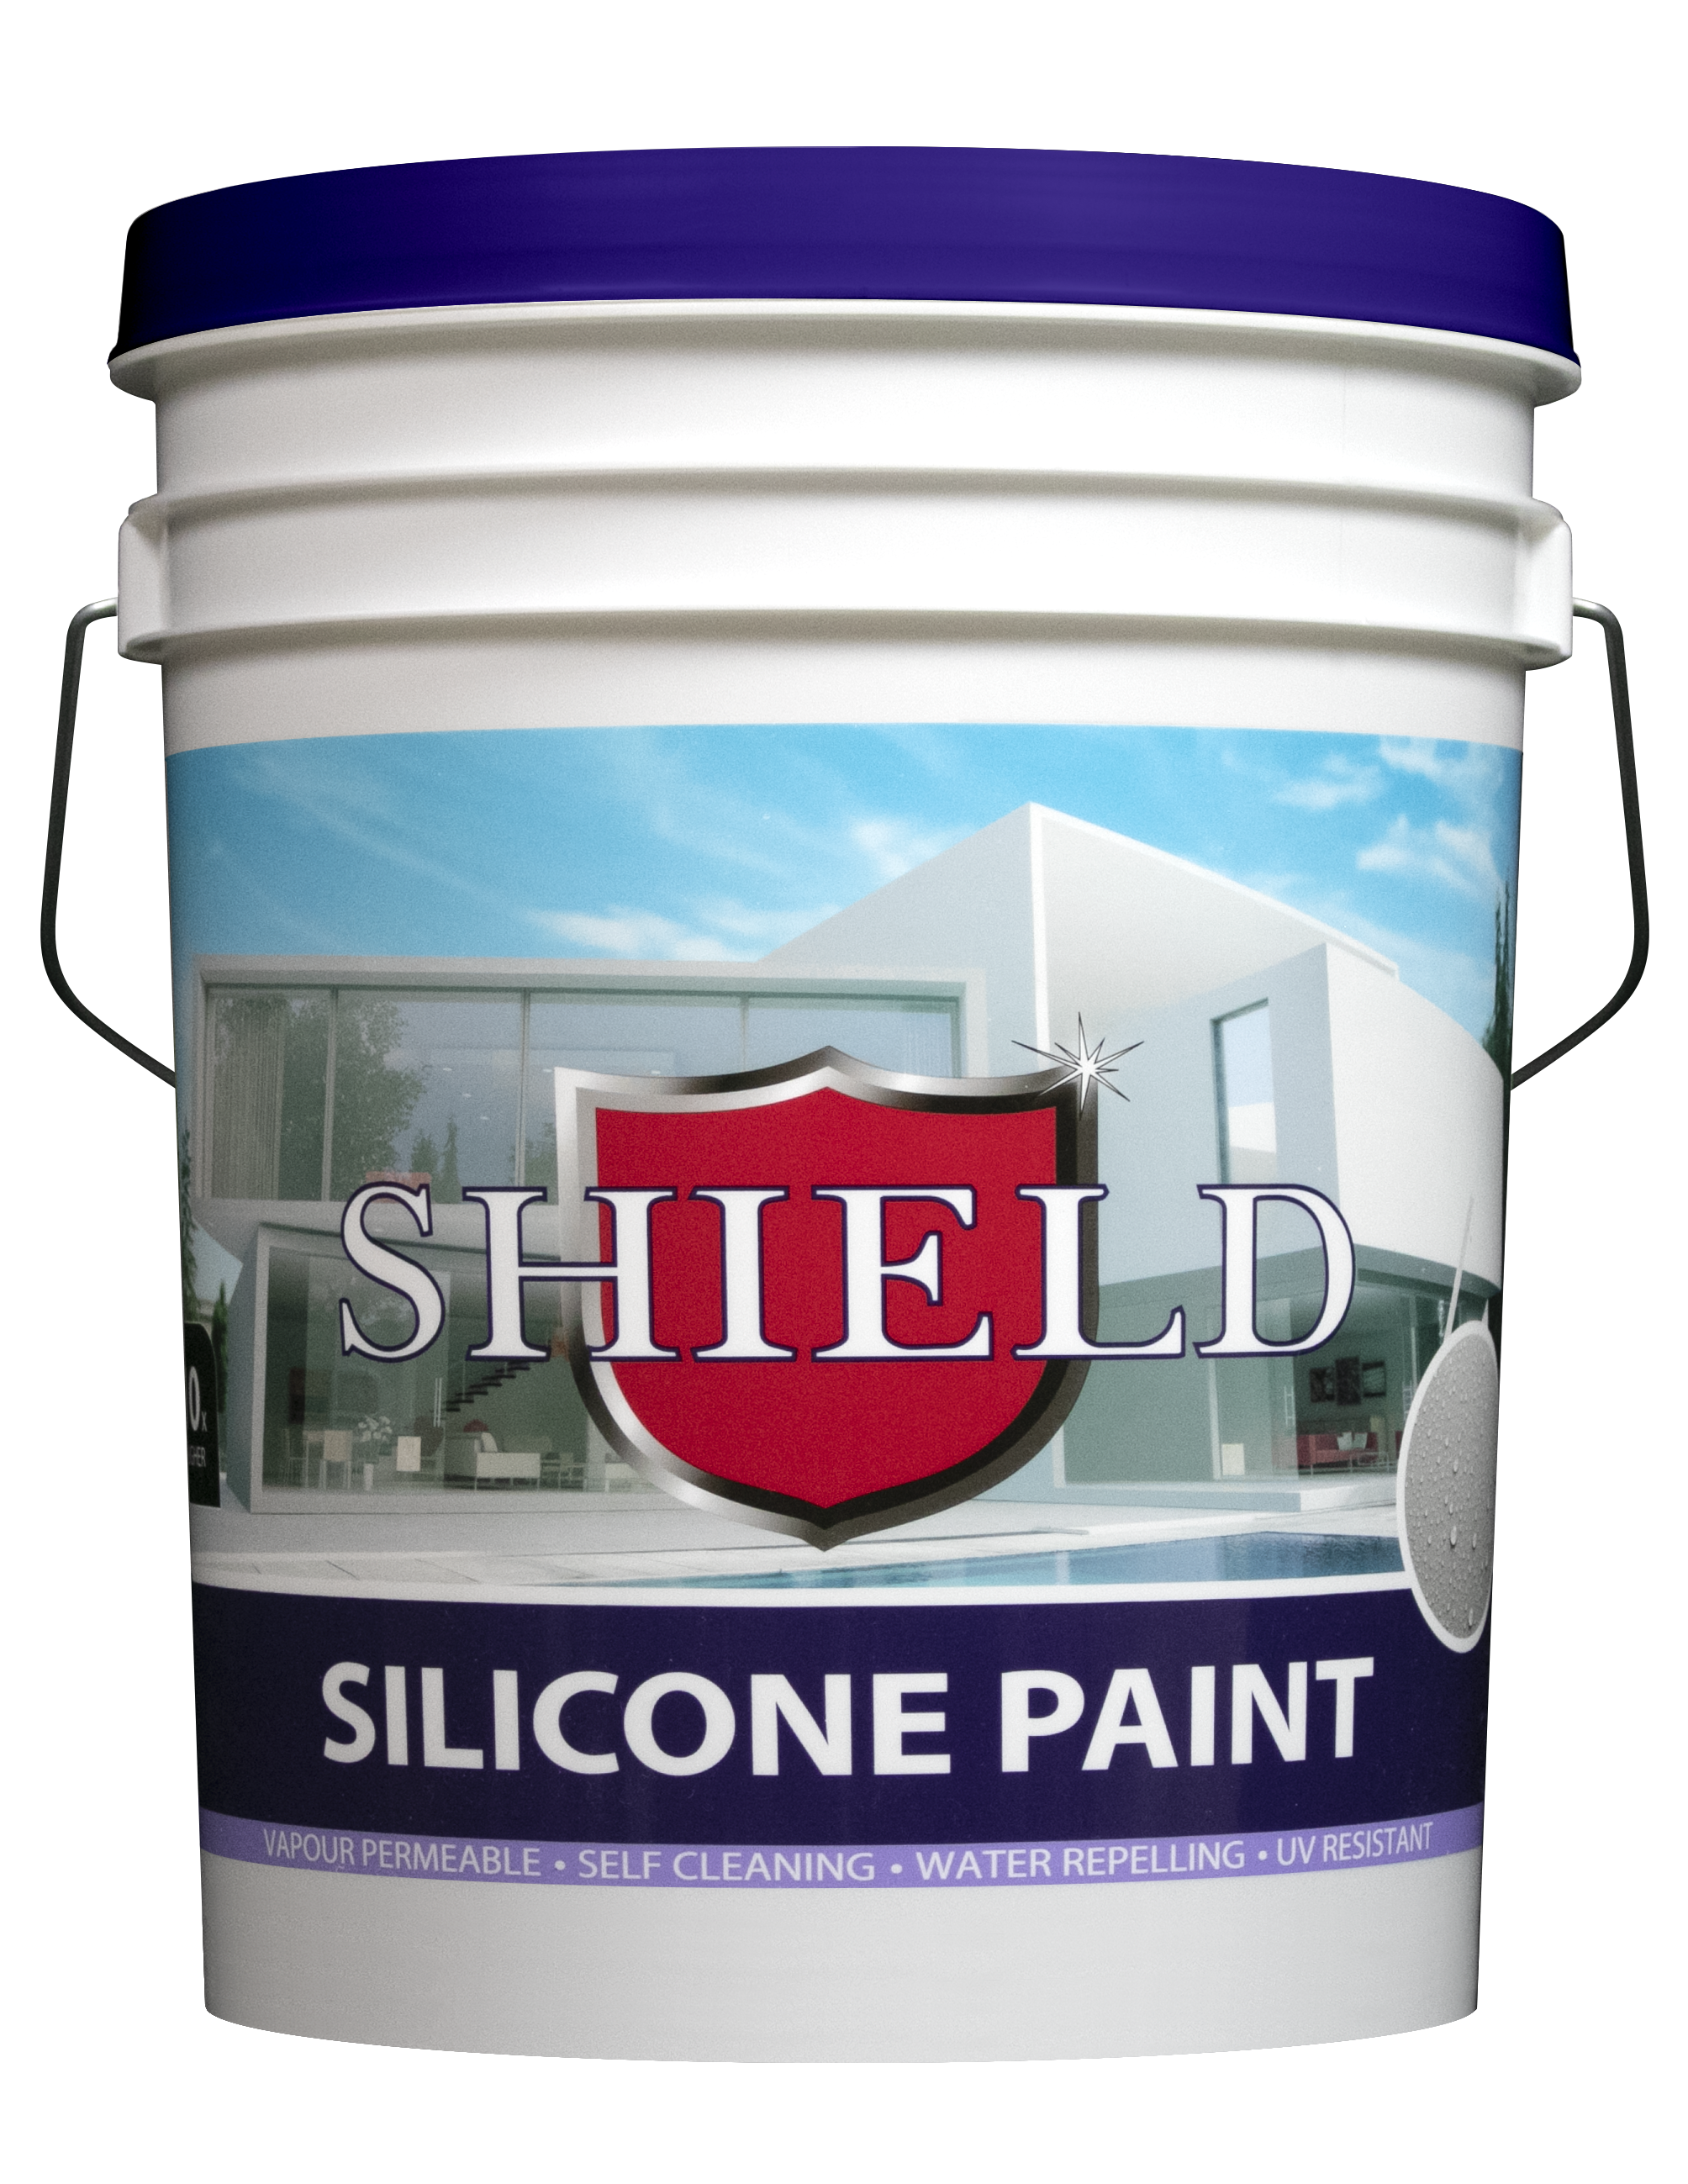 resources/assets/images/product_images/1578688496.Shield Silicone Paint 20L (purple).png